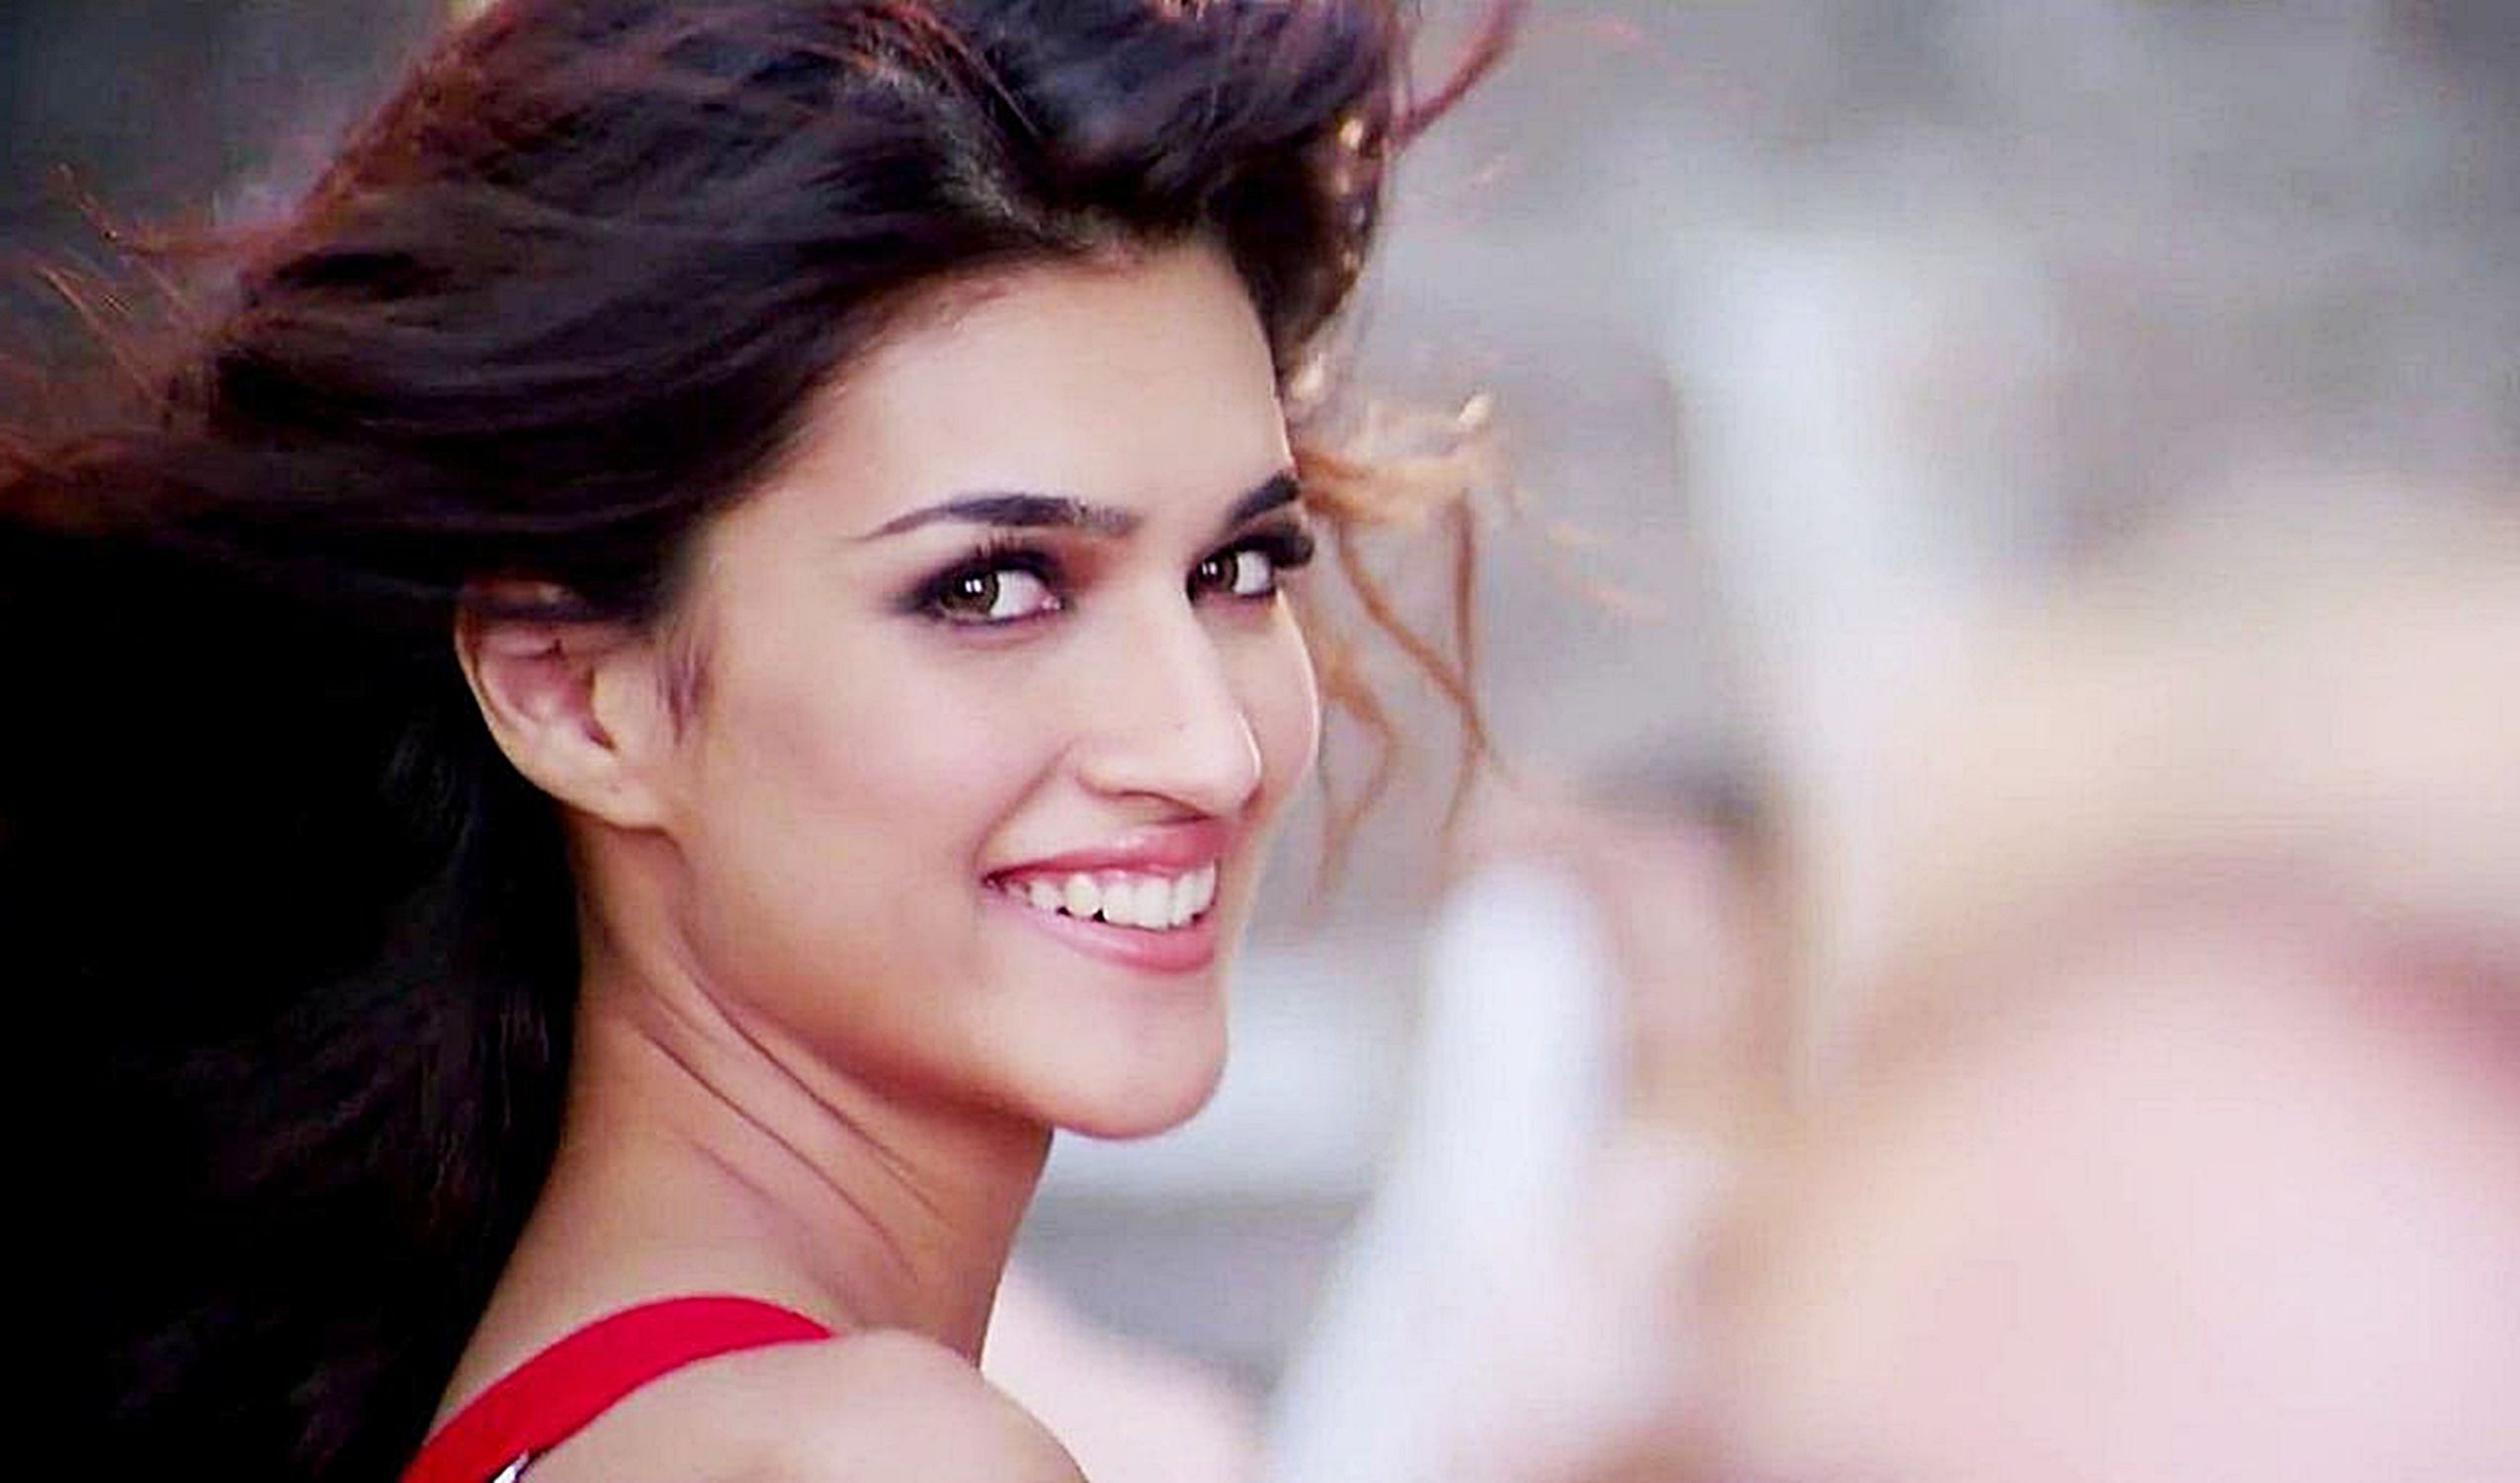 smiling kriti sanon face look mobile background hd photos free desktop